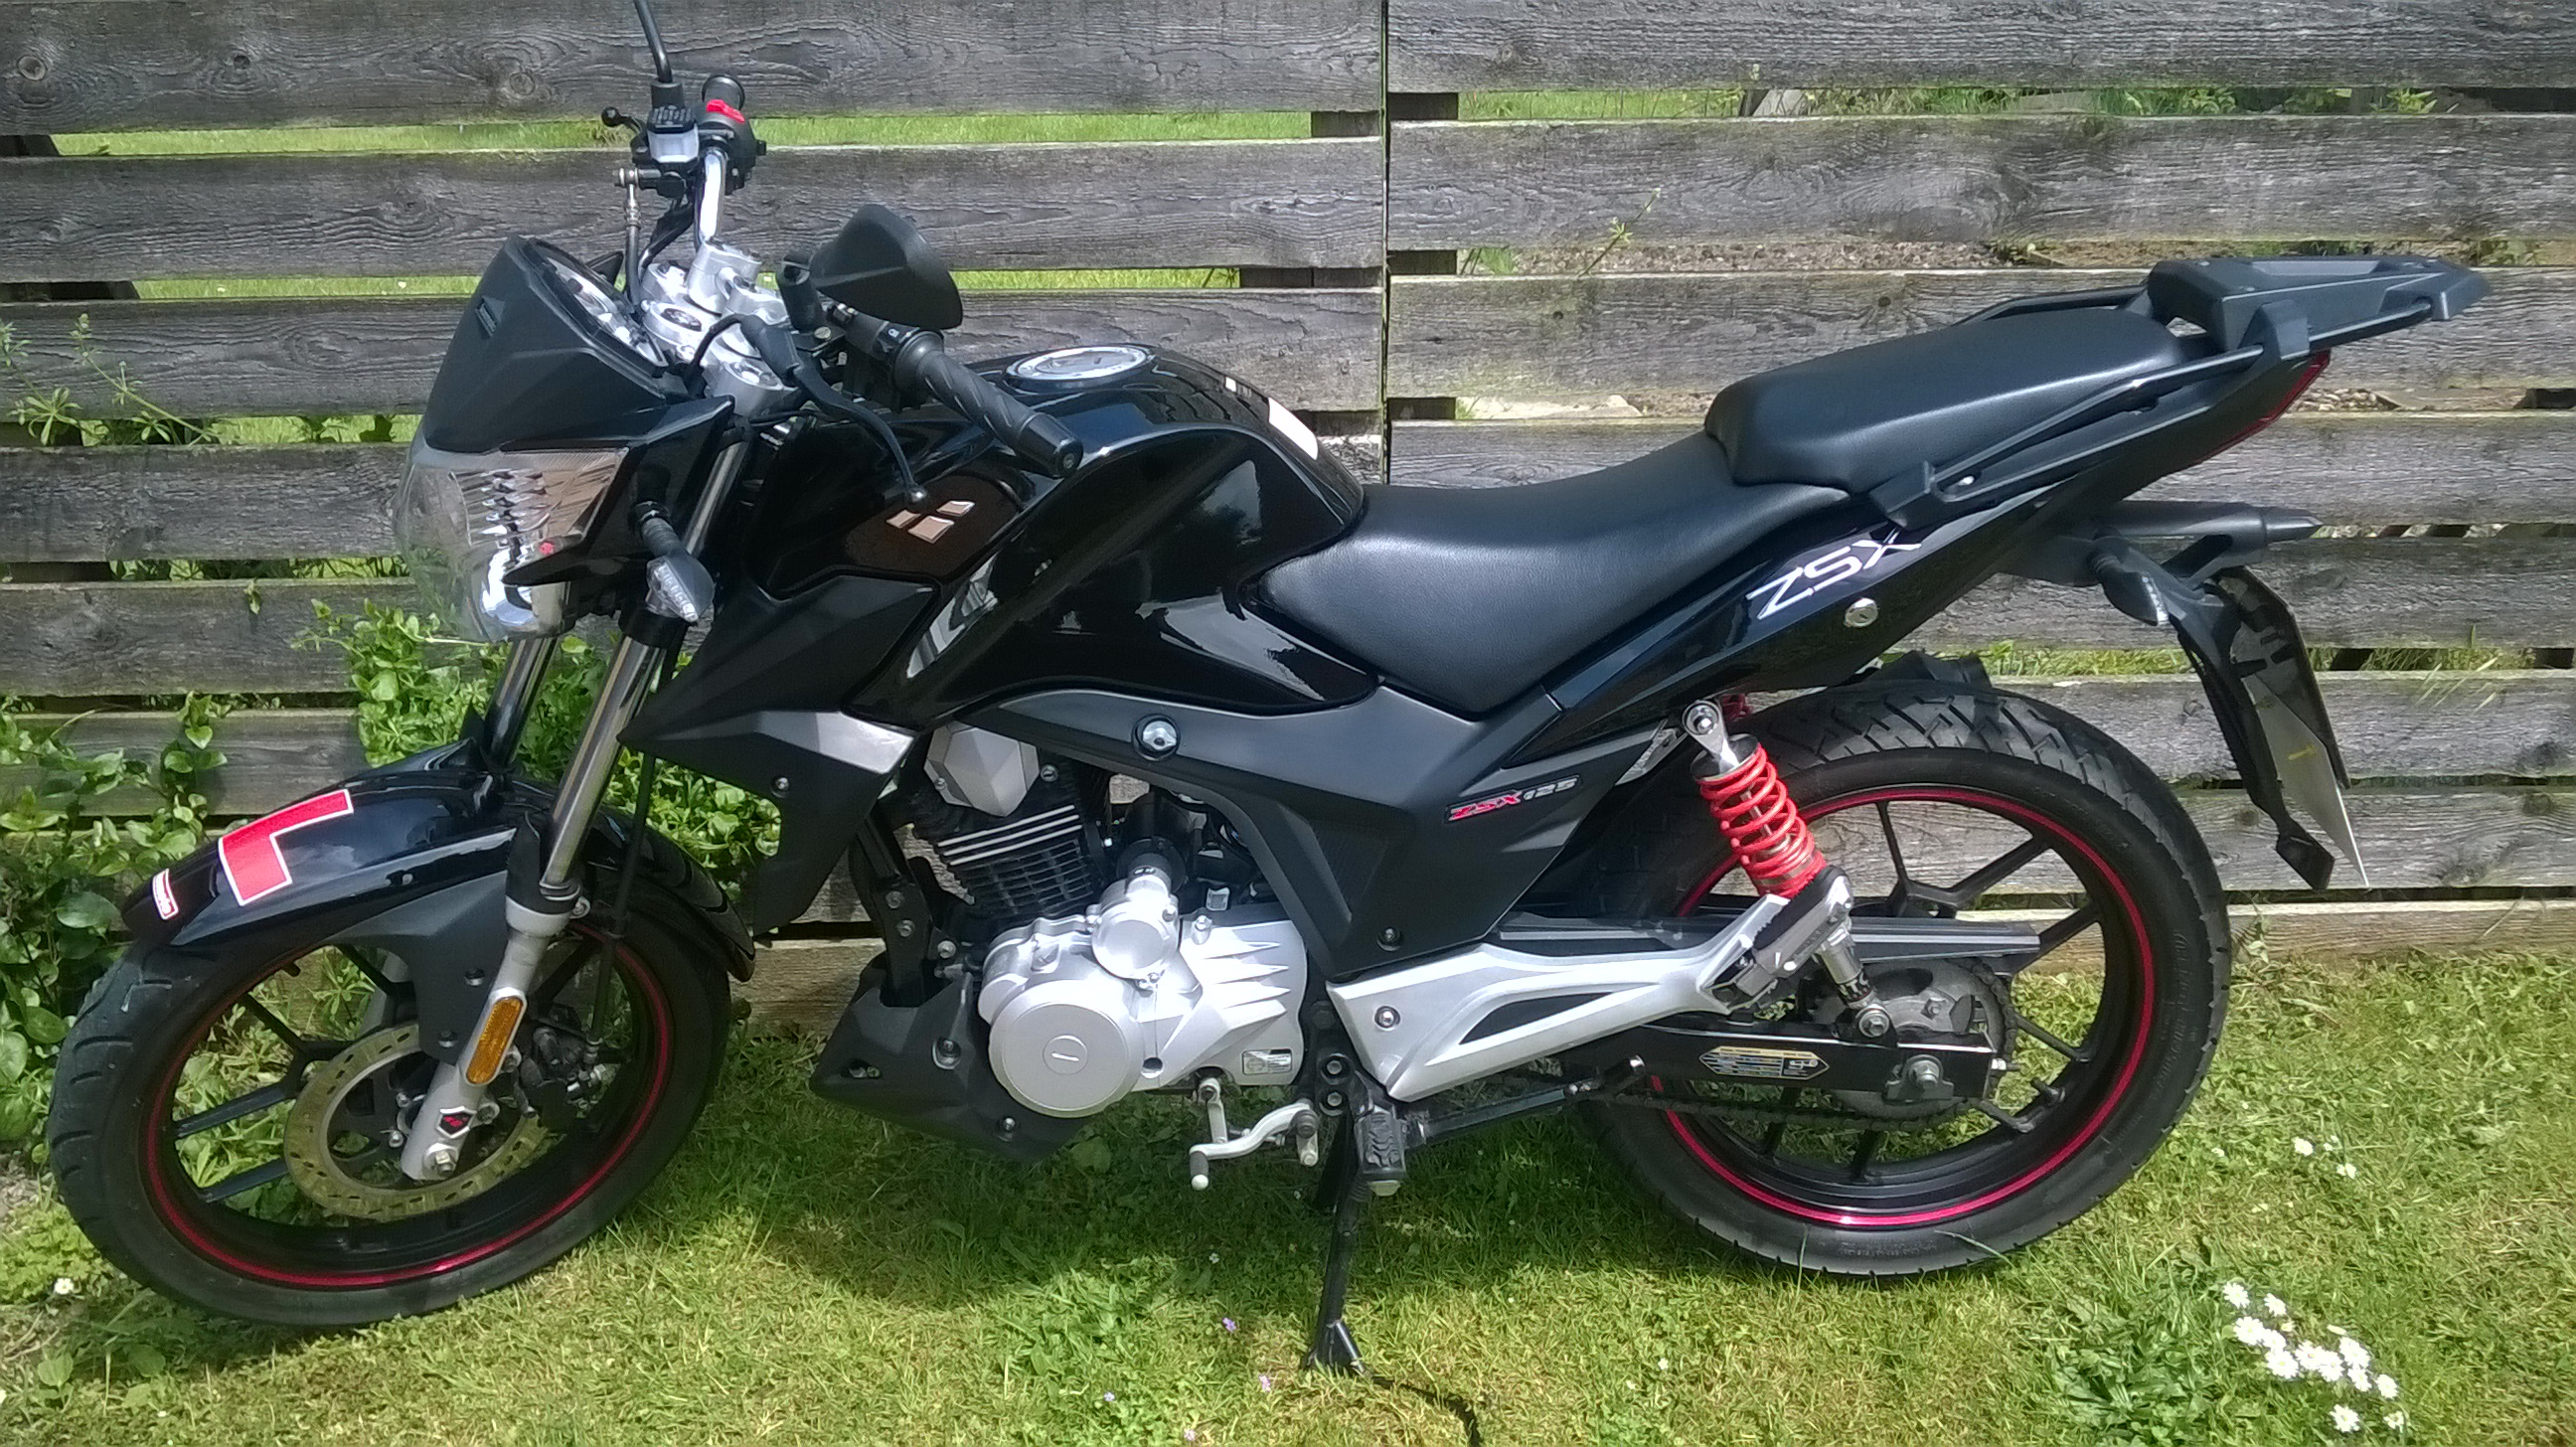 ZS125-48A review